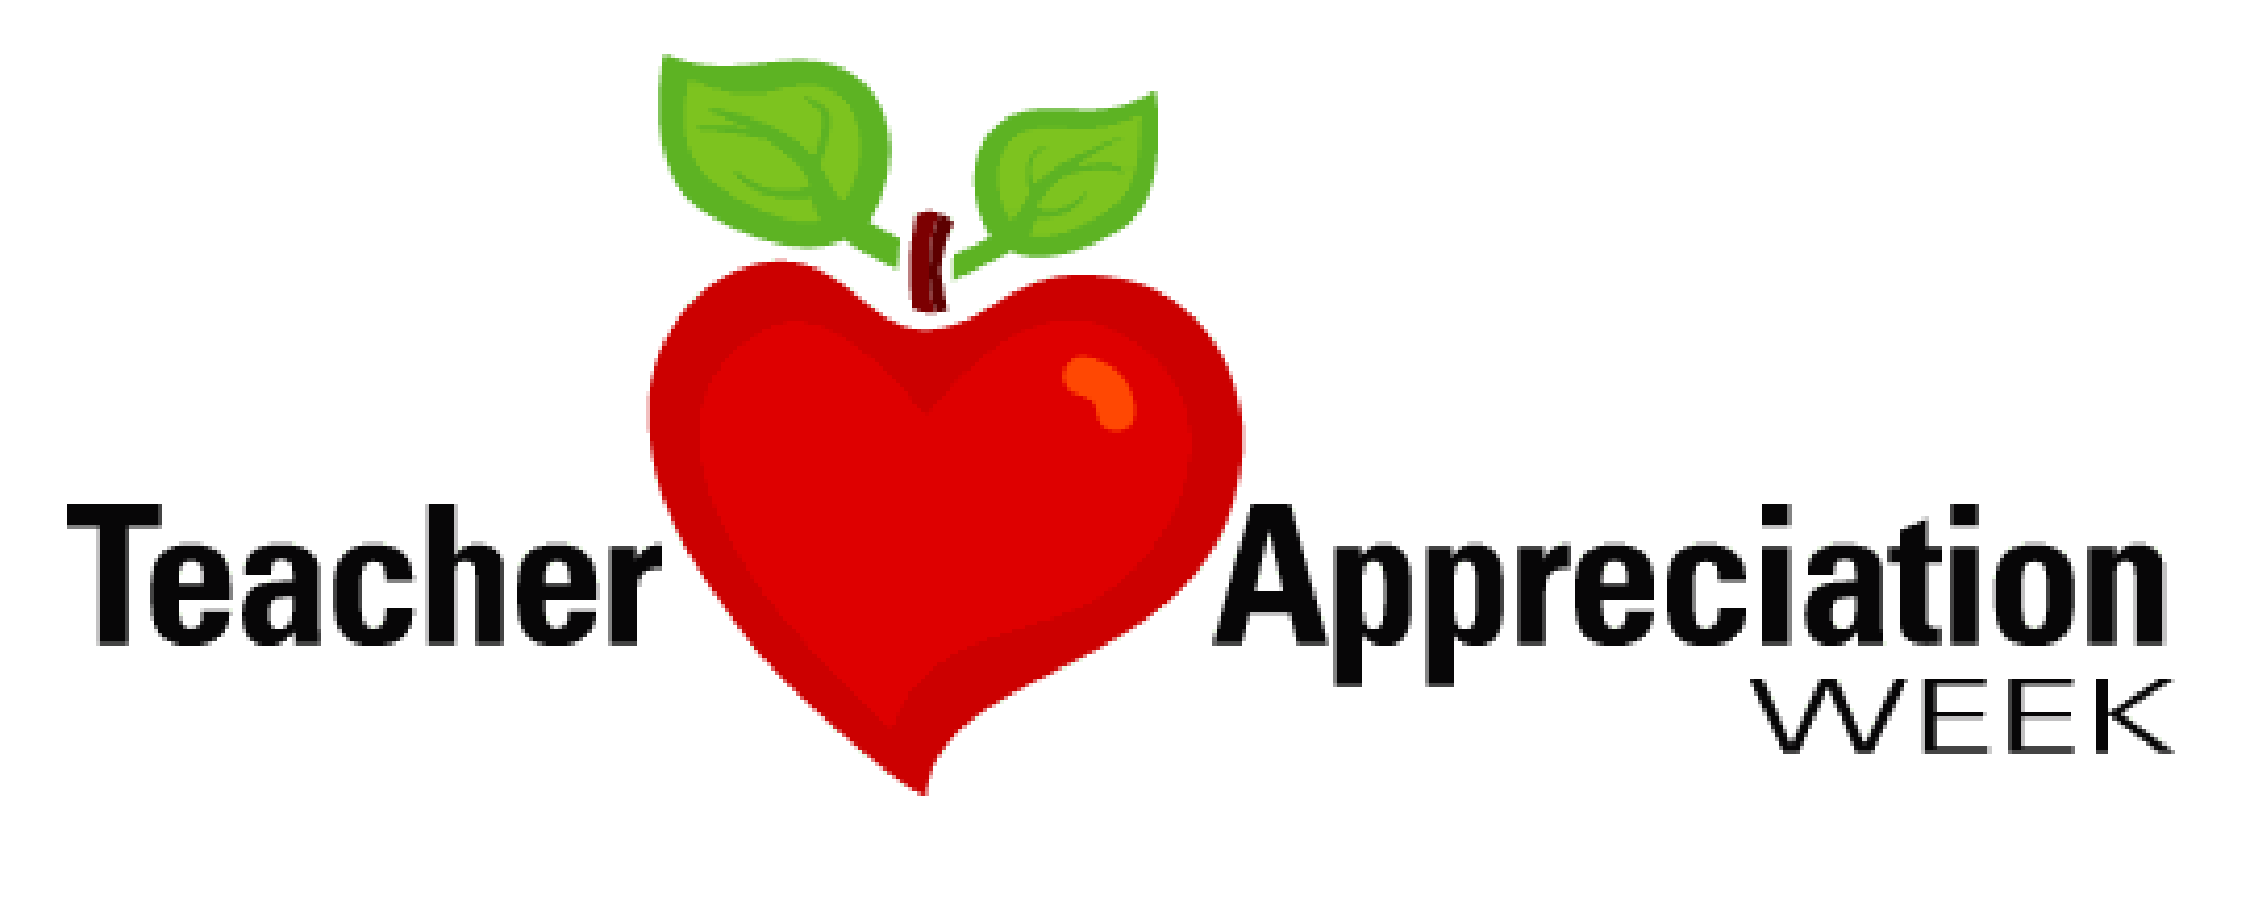 Students and parents salute educators during National Teacher Appreciation  Week